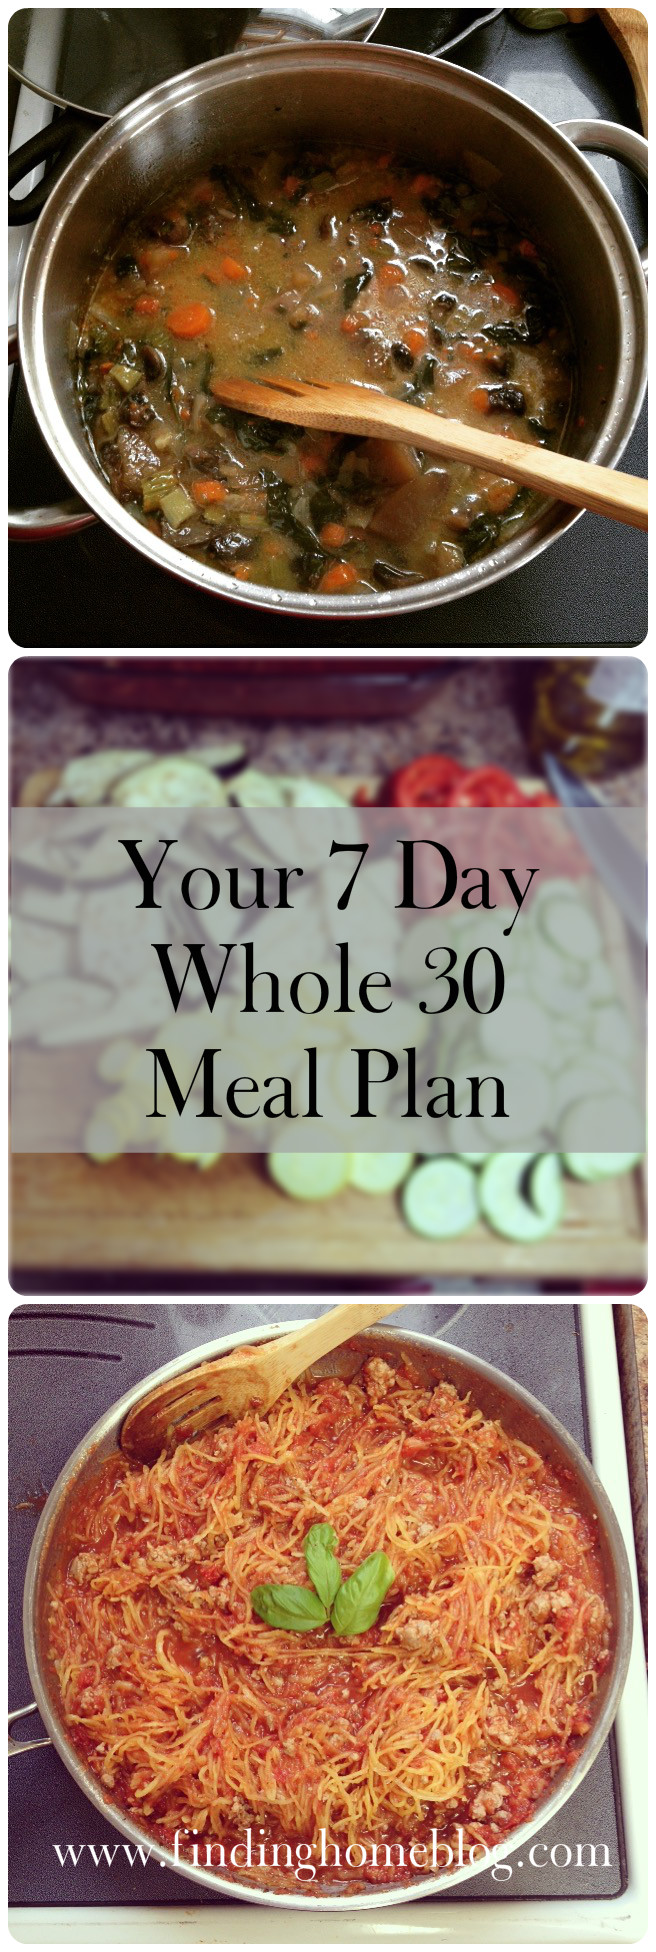 Whole 30 Menu Plan #1